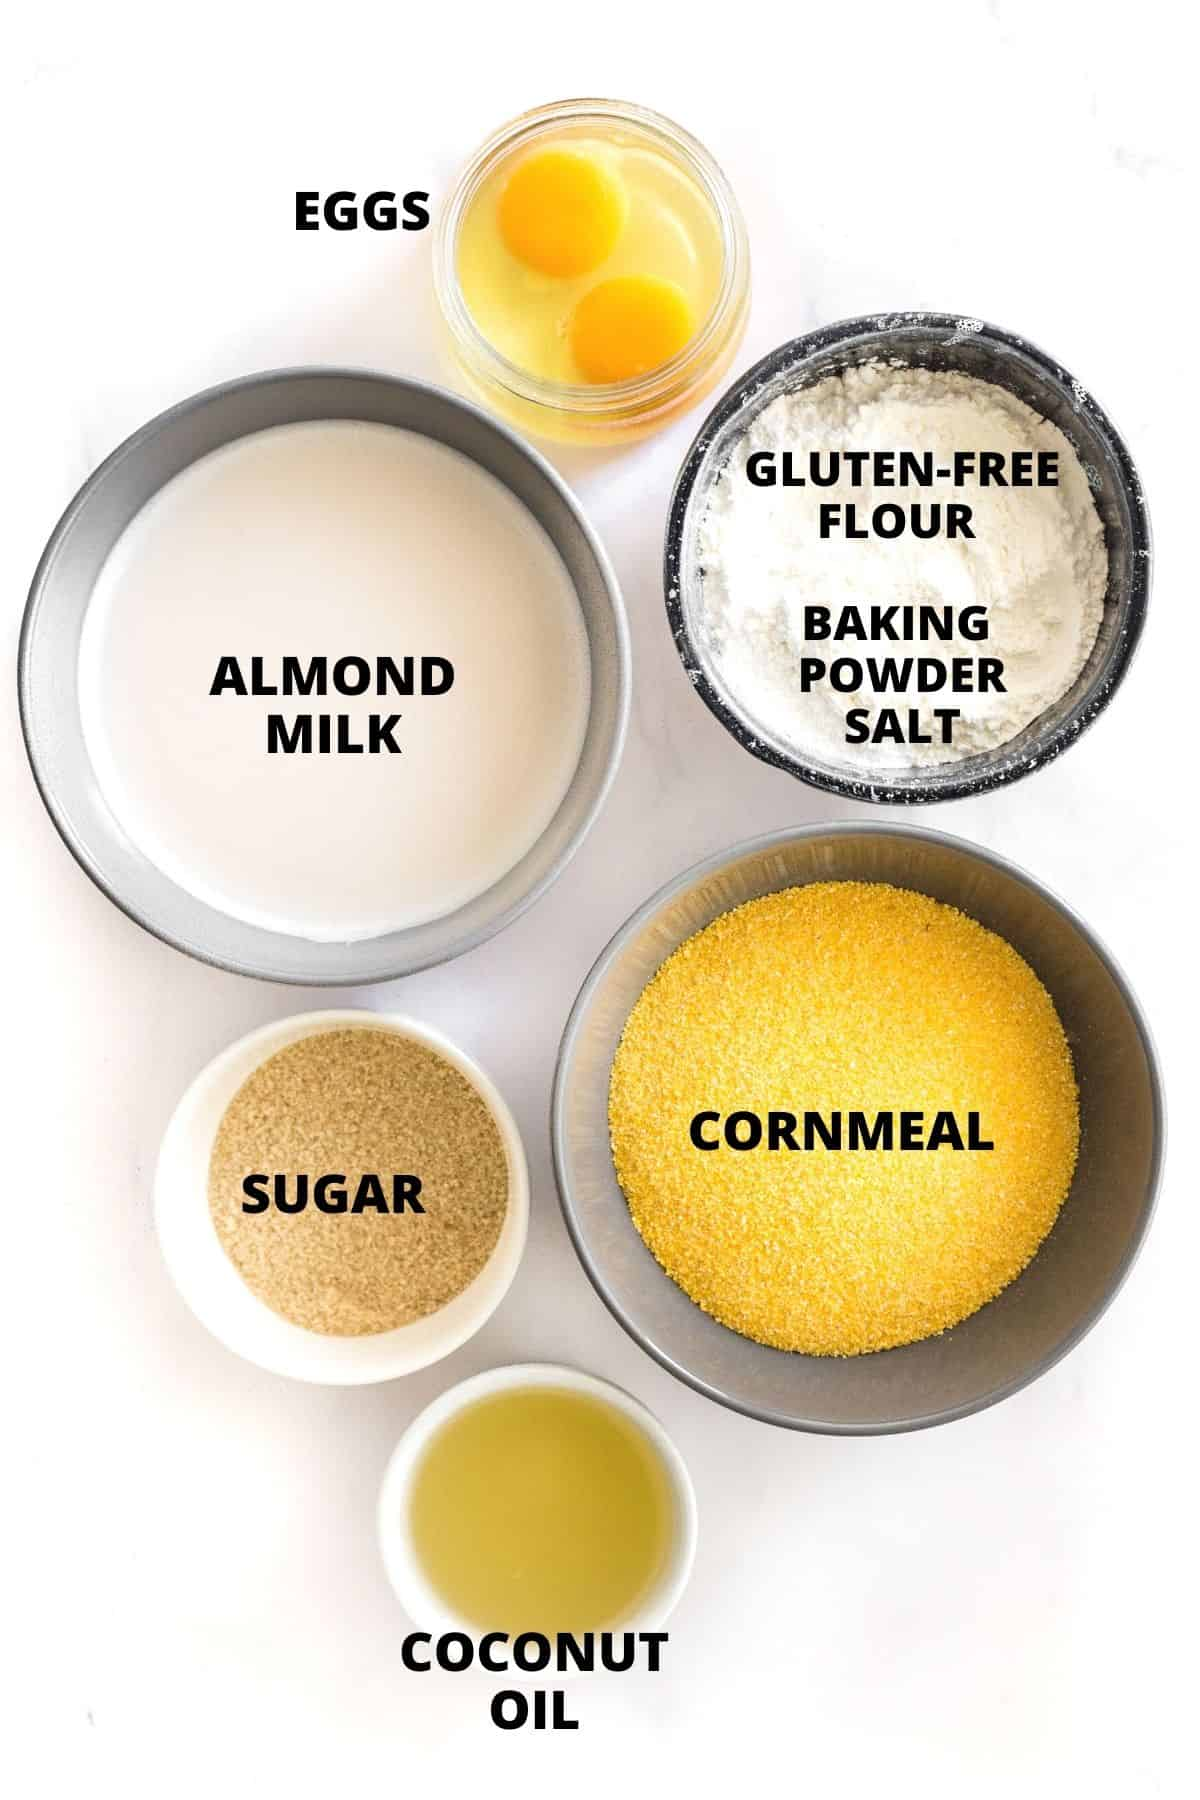 Labeled ingredients for gluten-free cornbread laid out on marble board.